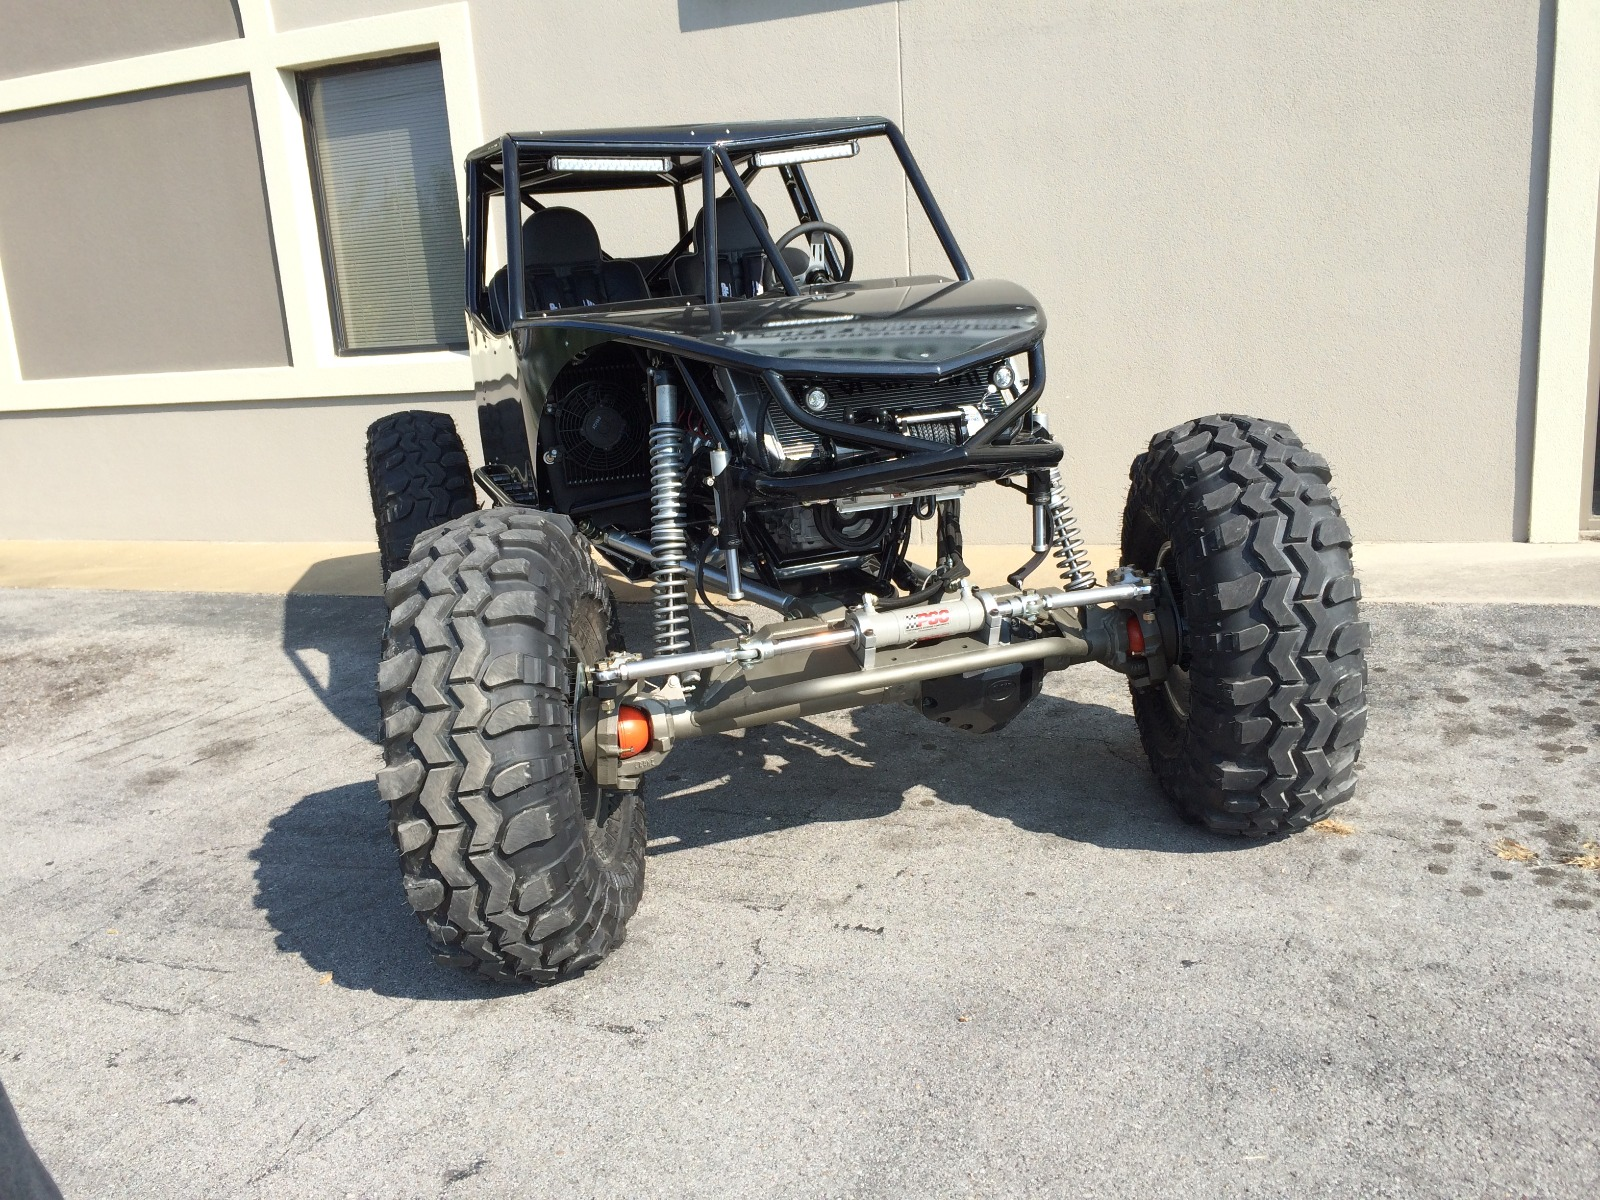 Revolution 4 Seat Rock Crawler Chassis Buggy 3